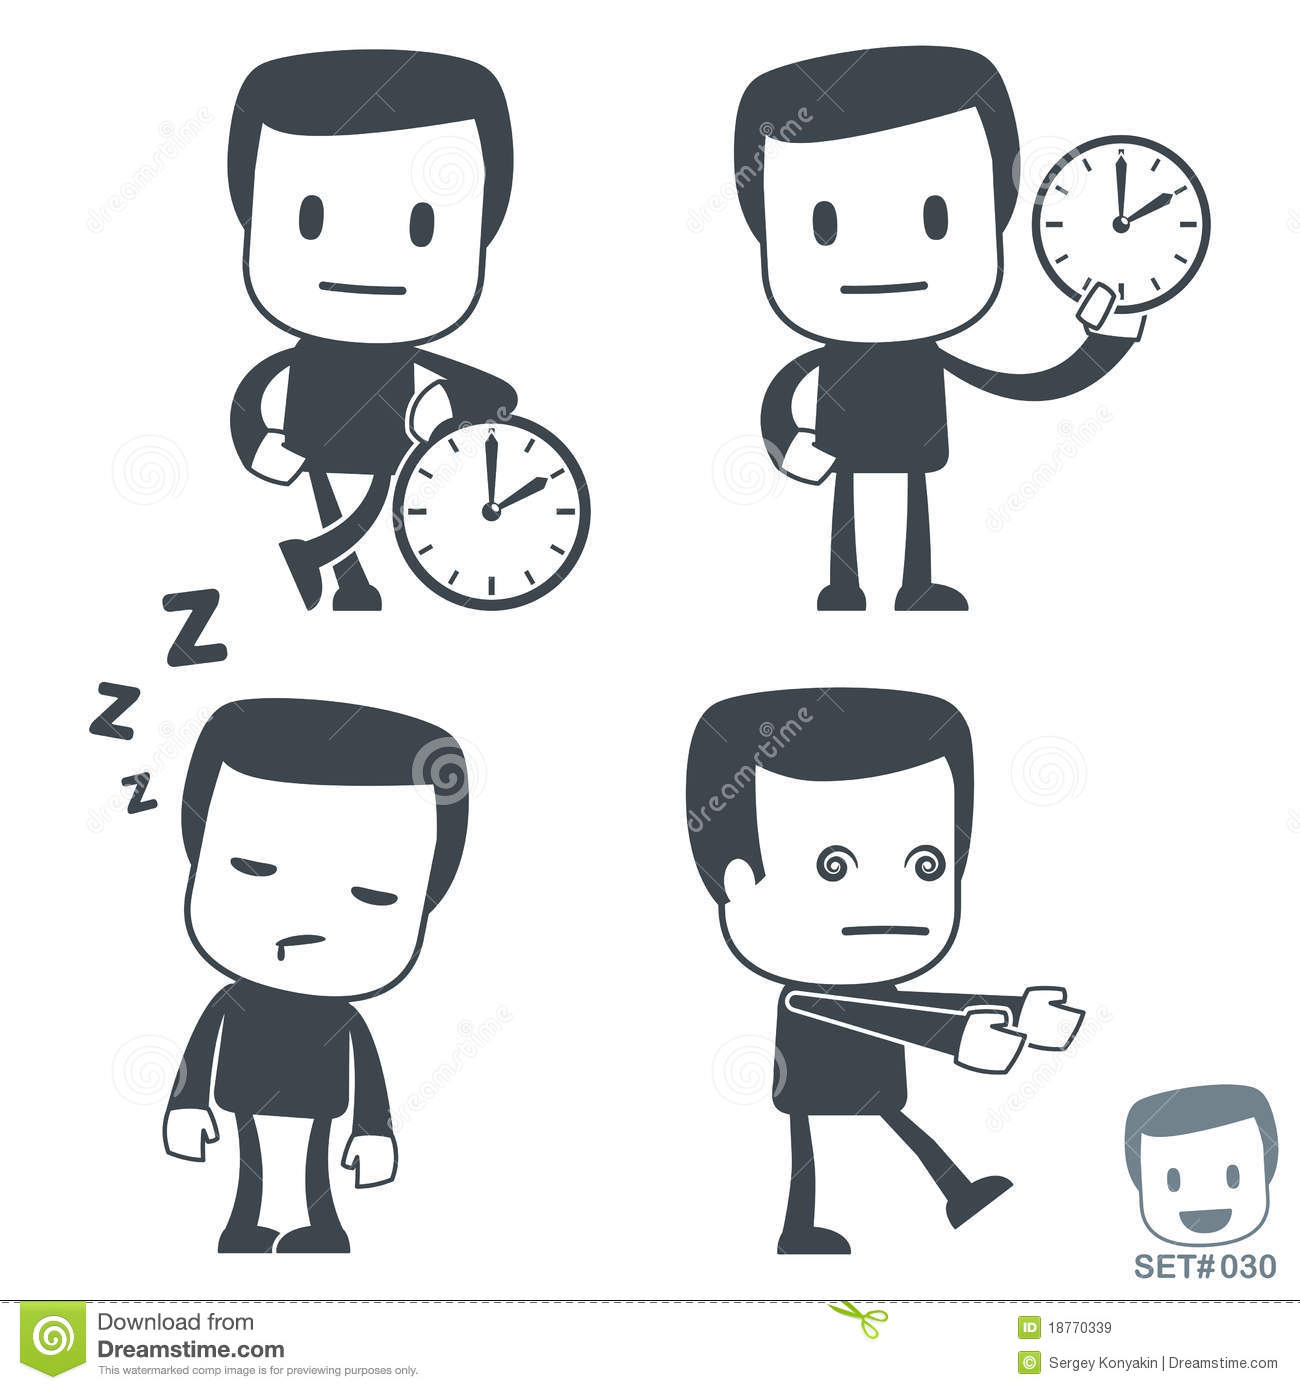 Cute Character Design Illustrator : Time icon man set royalty free stock images image